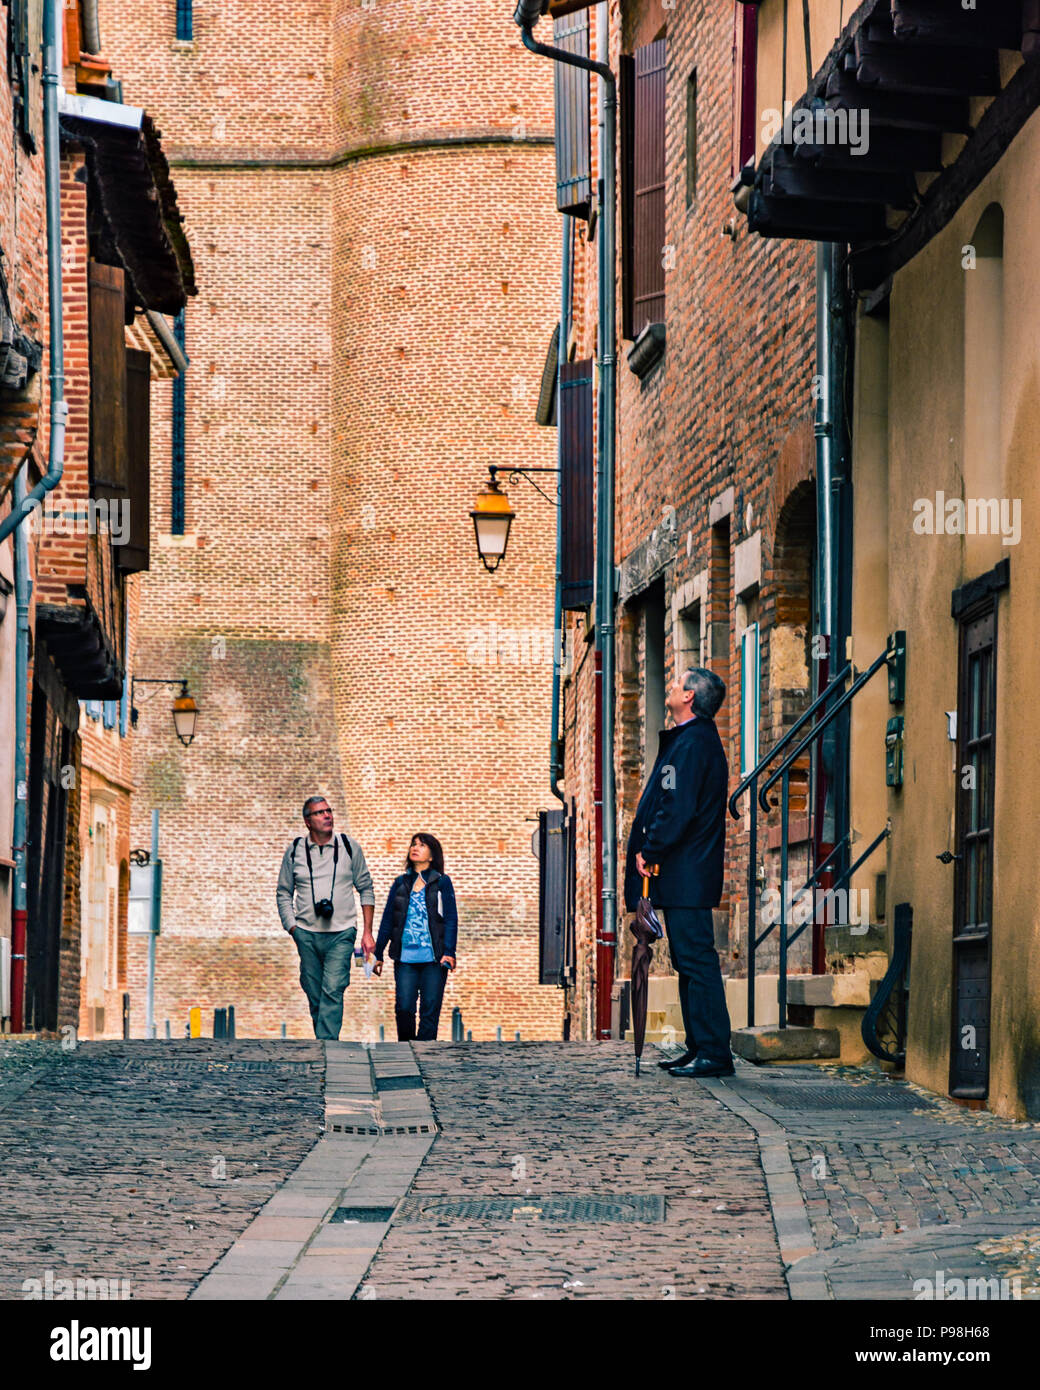 Tourists wander the medieval streets of the UNESCO listed Episcopal City of Albi, France Stock Photo